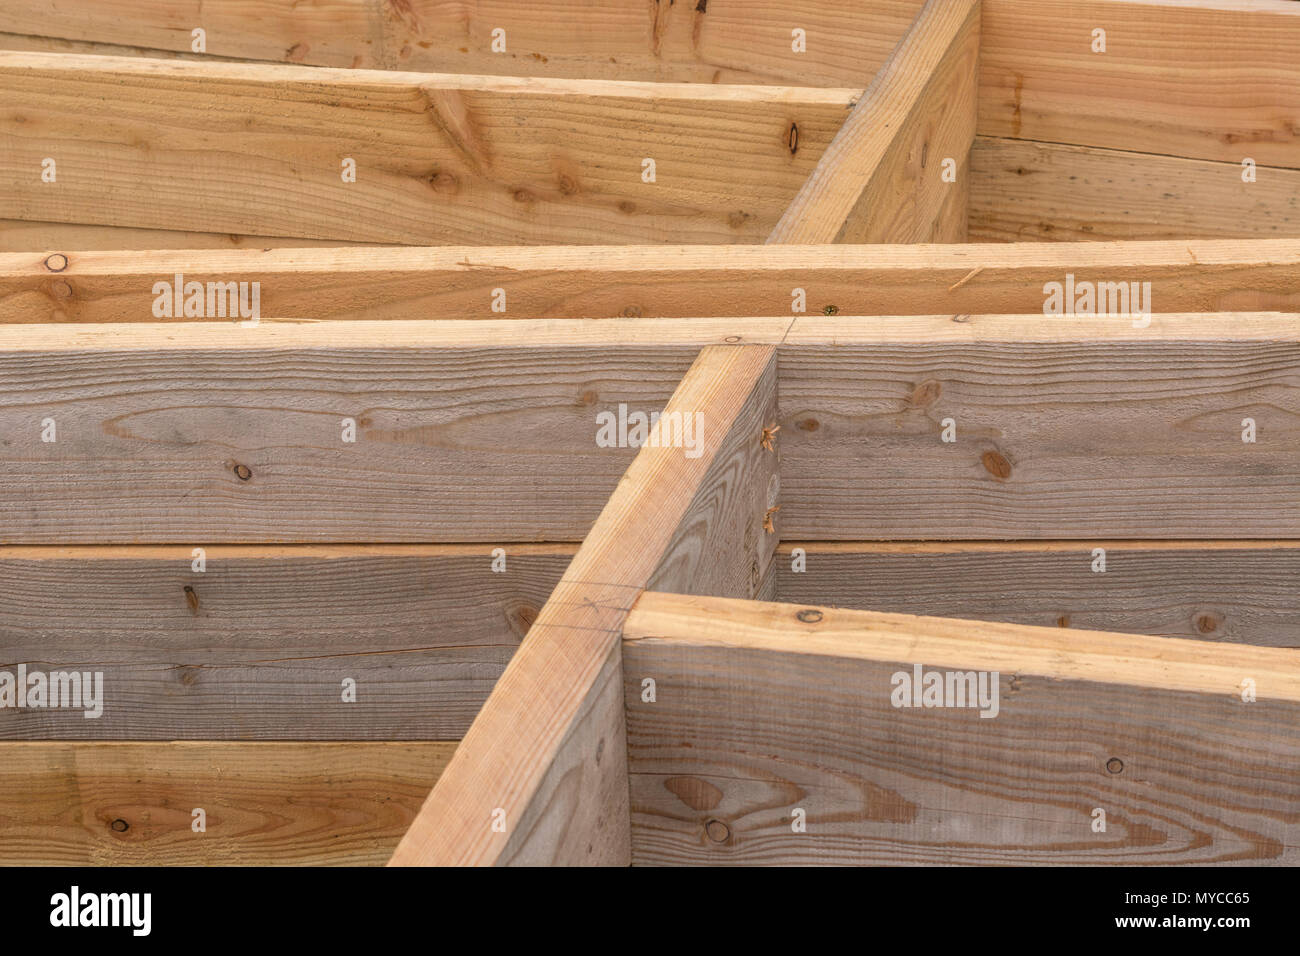 Woodwork structure under construction - with definitive angular configuration. - Stock Image